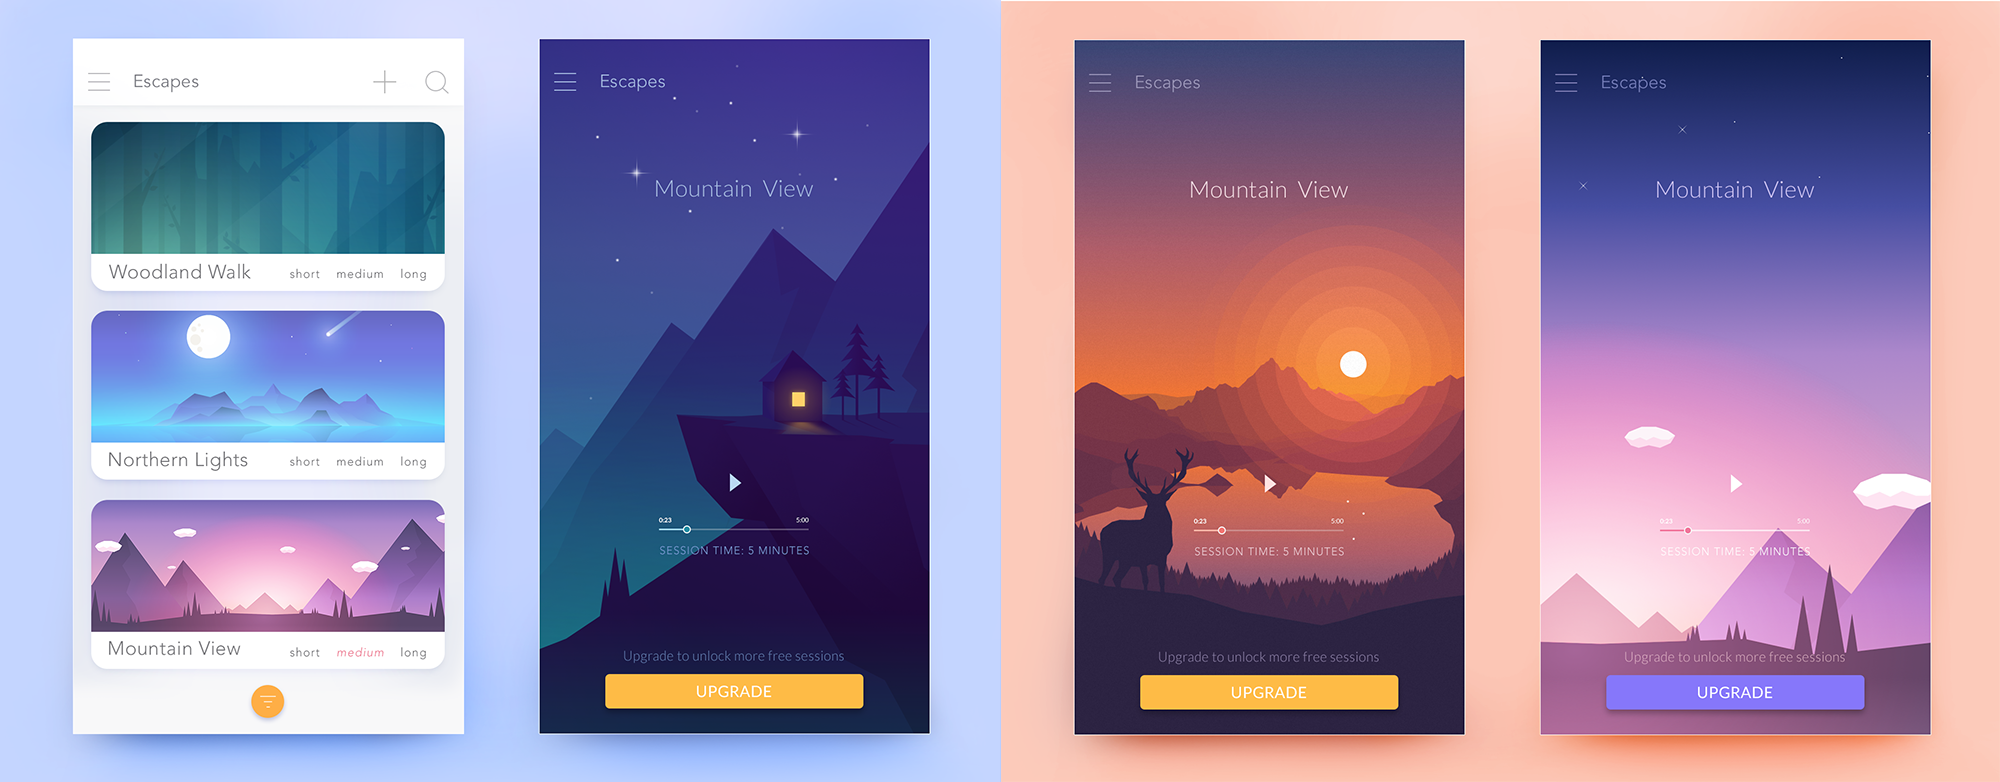 Meditation app UI design